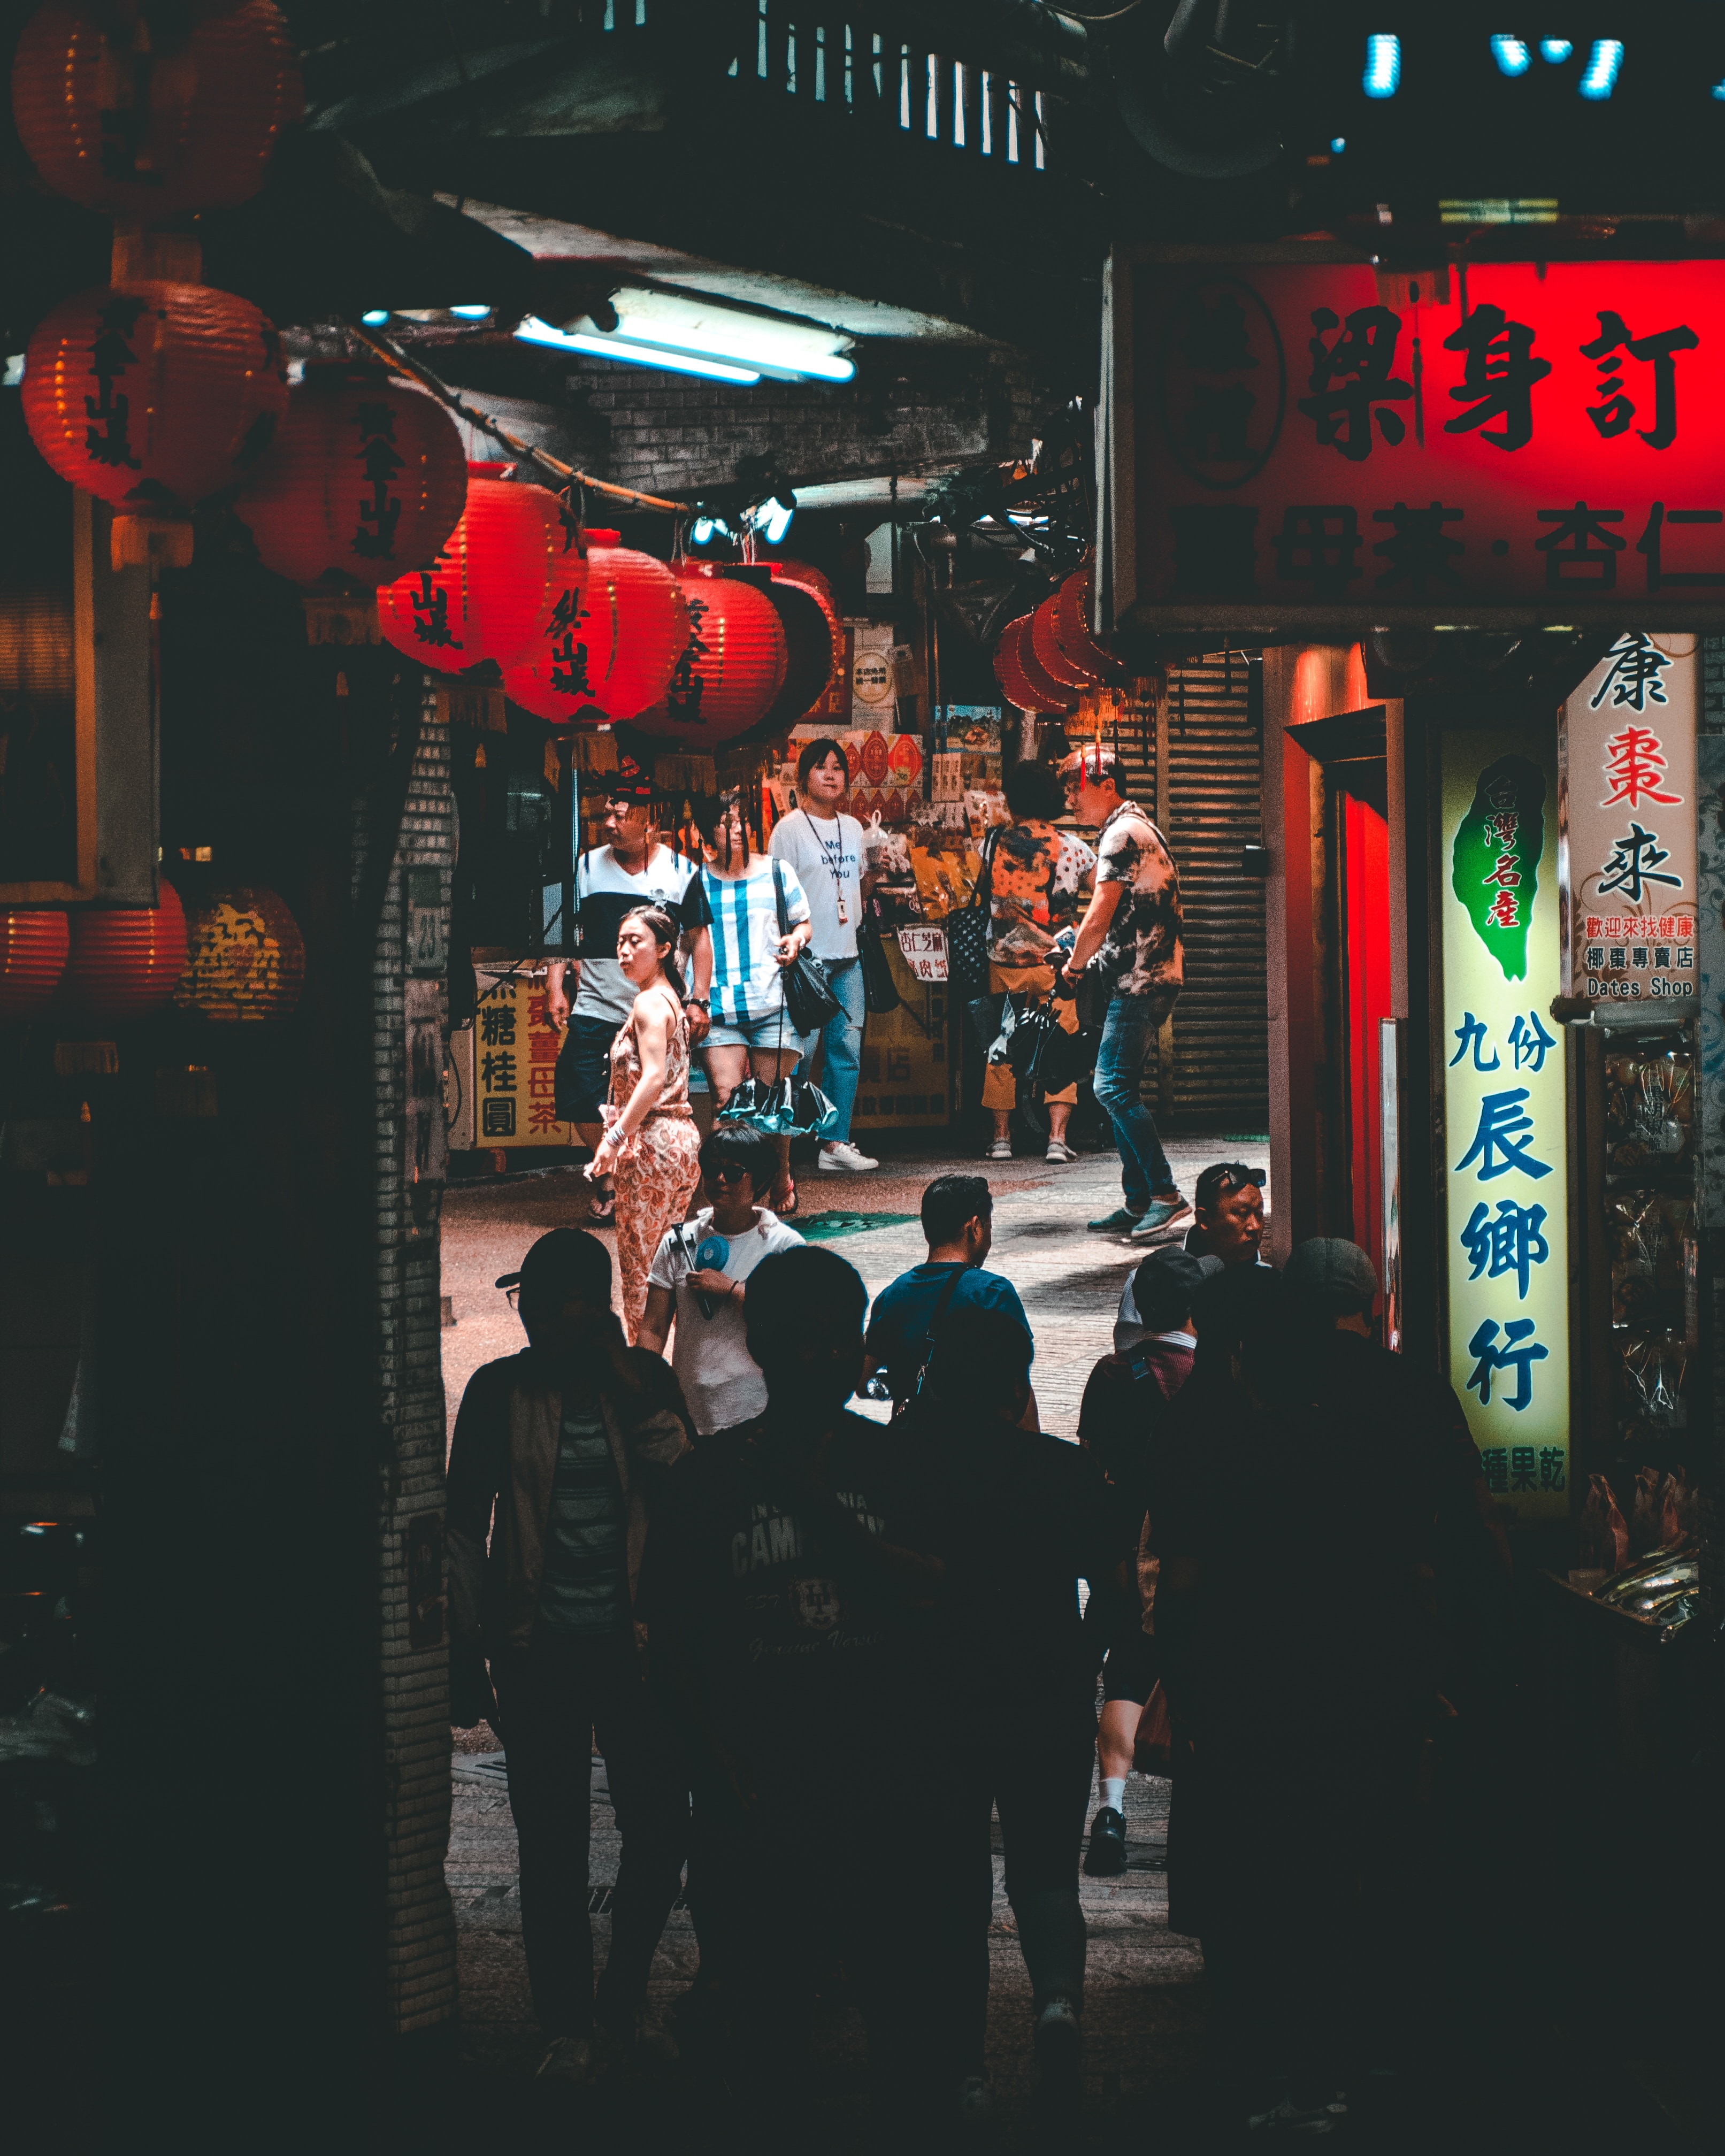 【Taipei Day Tour】Fans from Thailand visit the Taiwan movie filming locations ─ Jiufen